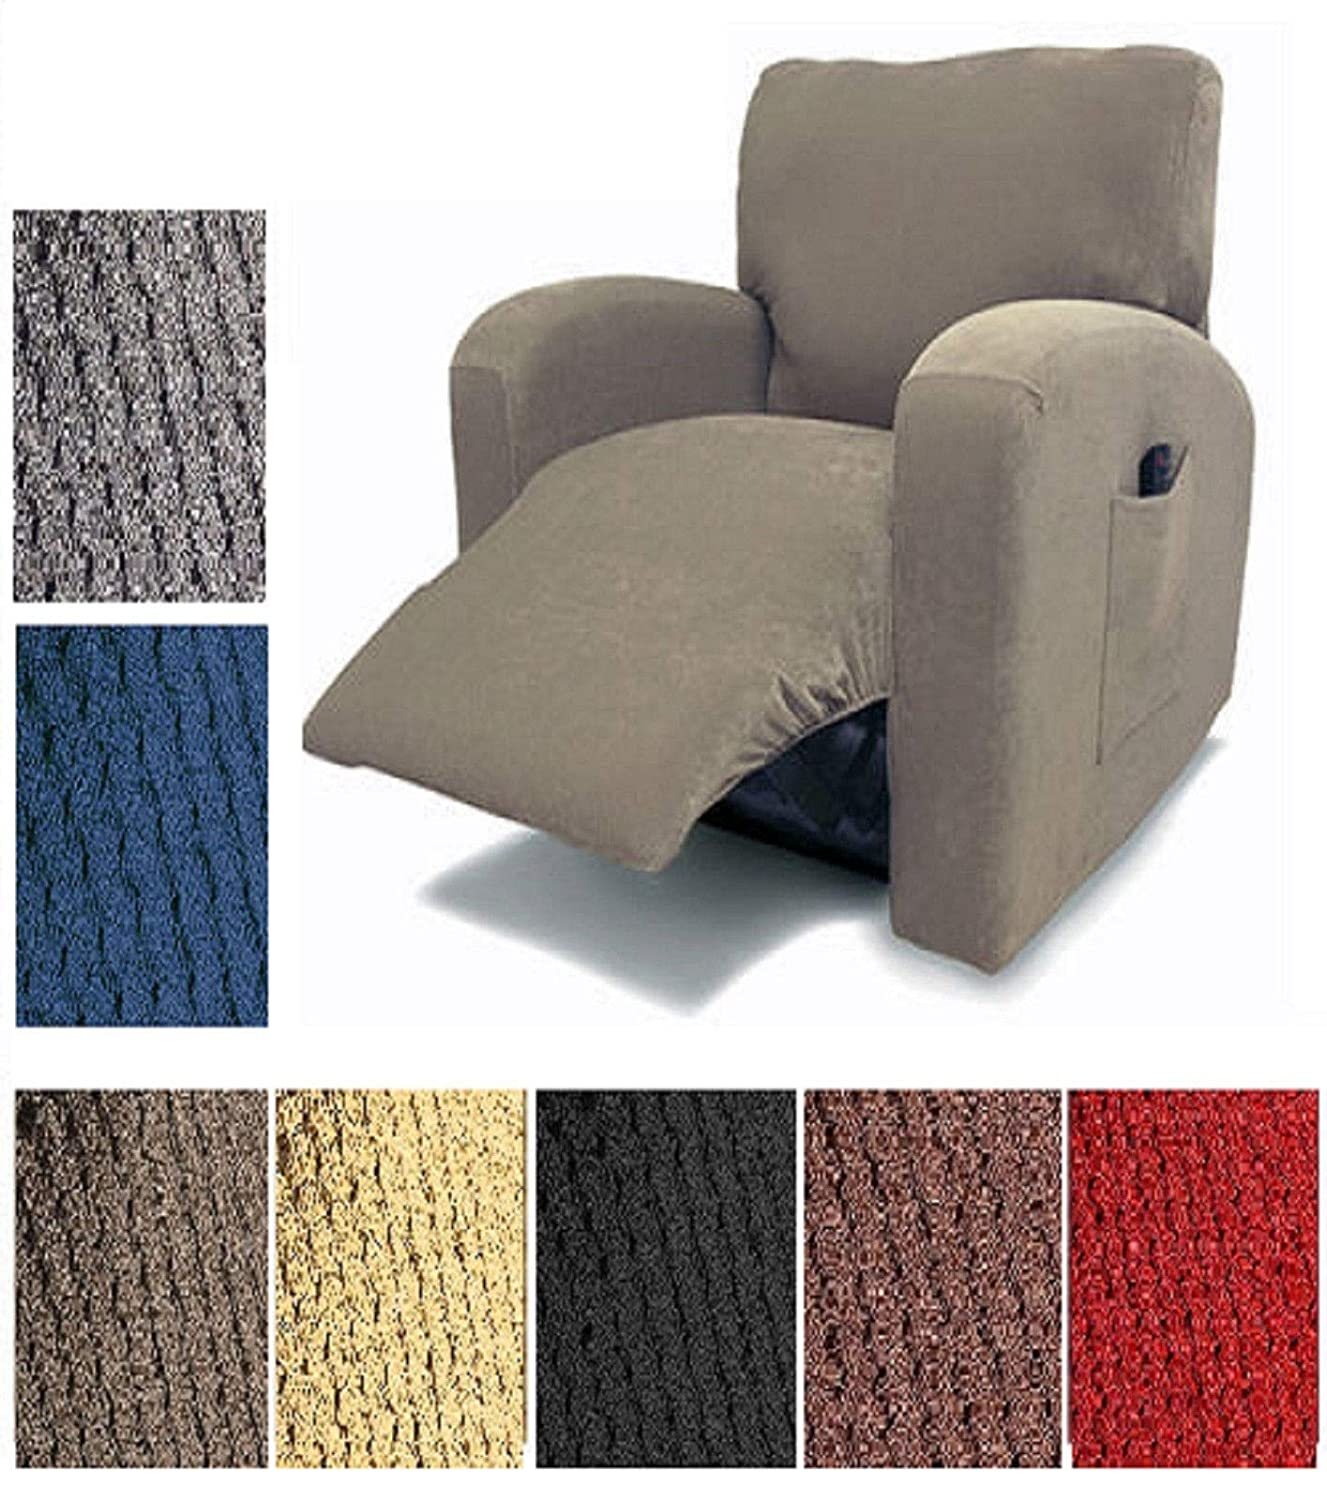 Incredible Orlys Dream Pique Stretch Fit Furniture Chair Recliner Lazy Boy Cover Slipcover Many Colors Available Black Lamtechconsult Wood Chair Design Ideas Lamtechconsultcom